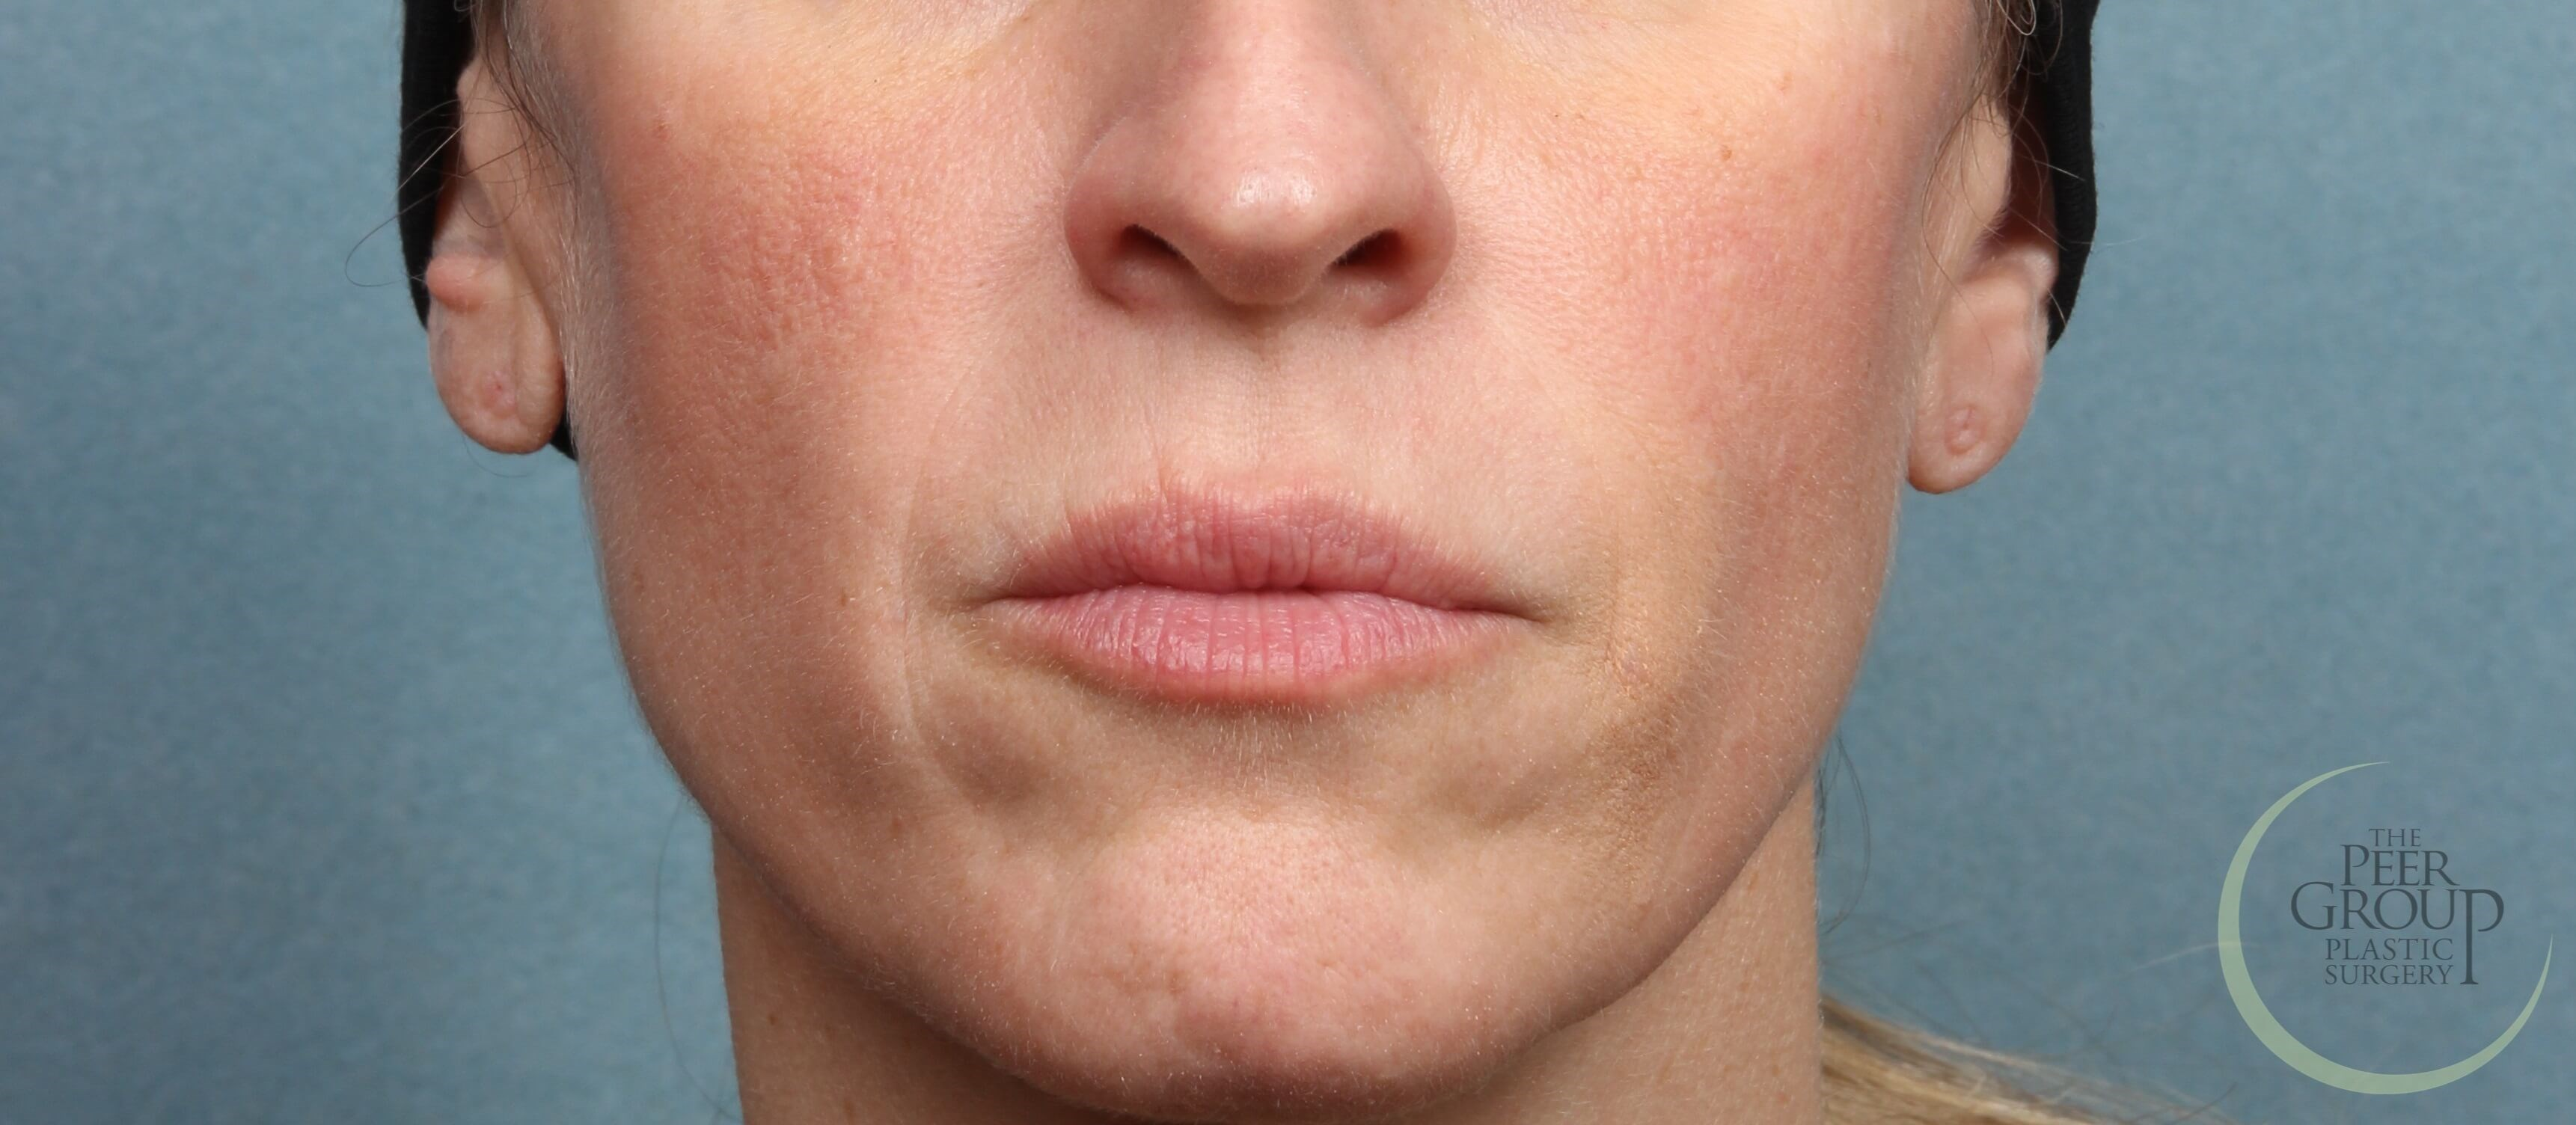 NJ Juvederm for Smile Lines After Juvederm